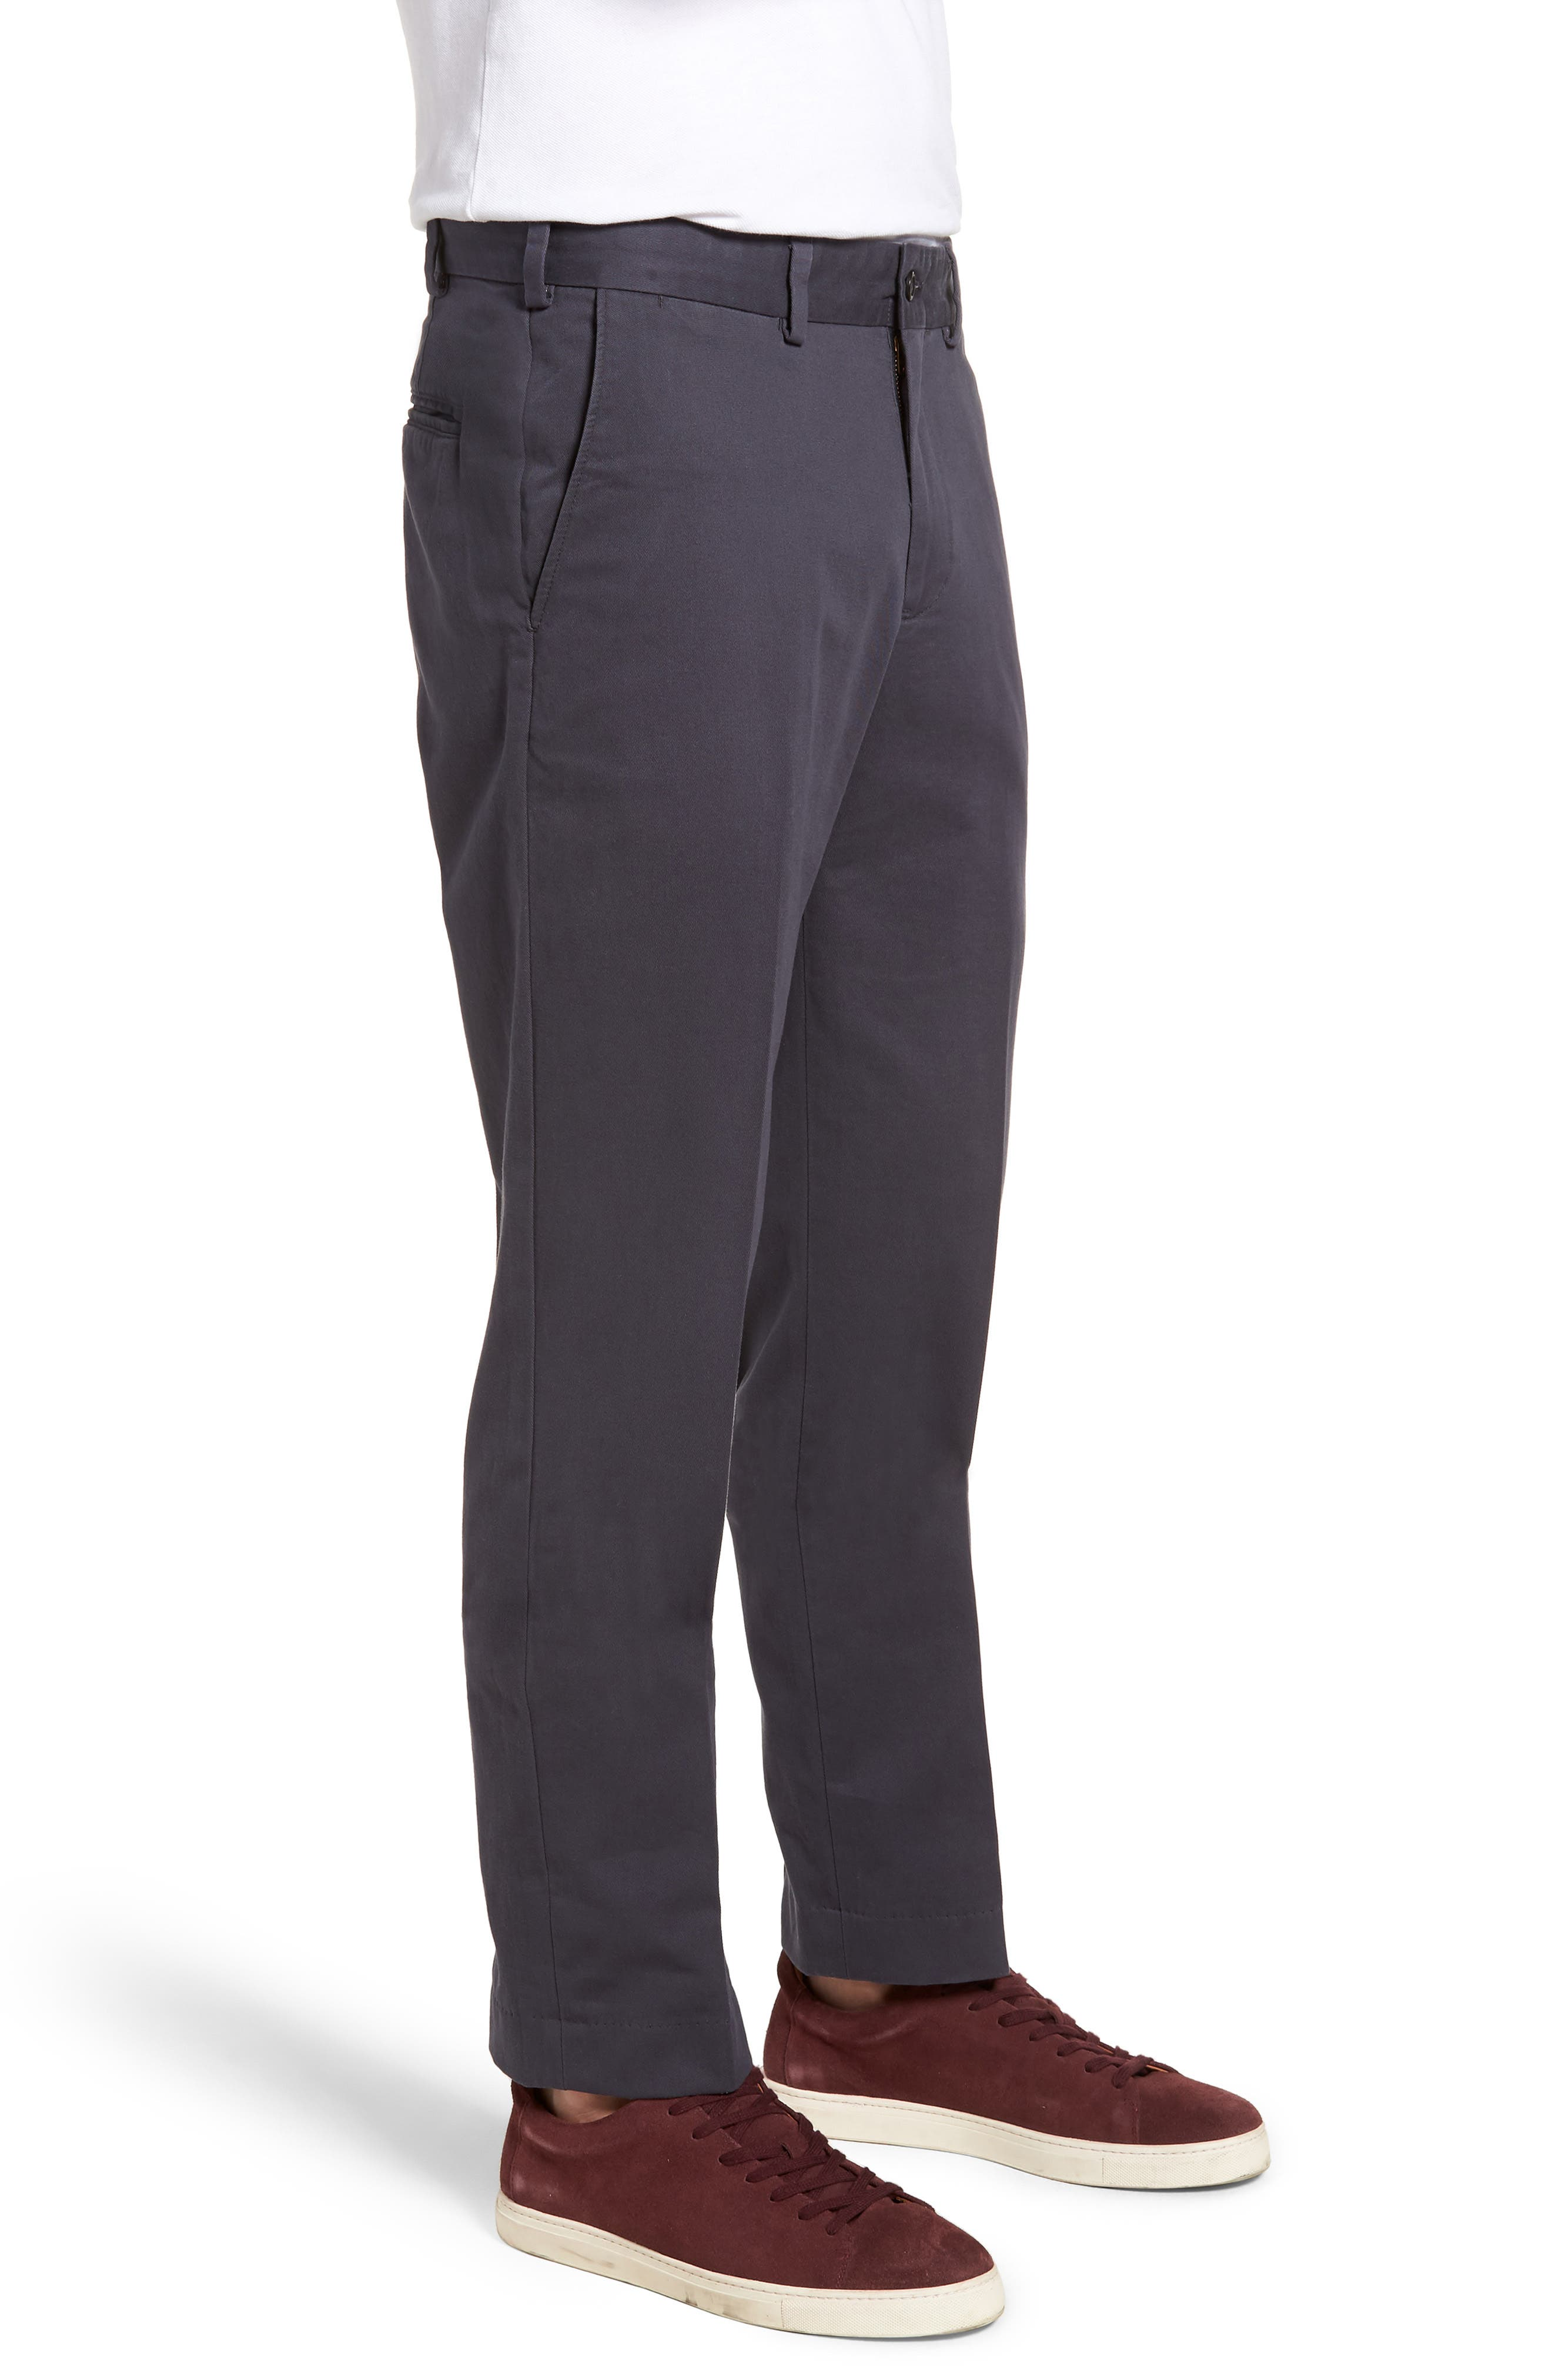 M3 Straight Fit Flat Front Vintage Twill Pants,                             Alternate thumbnail 3, color,